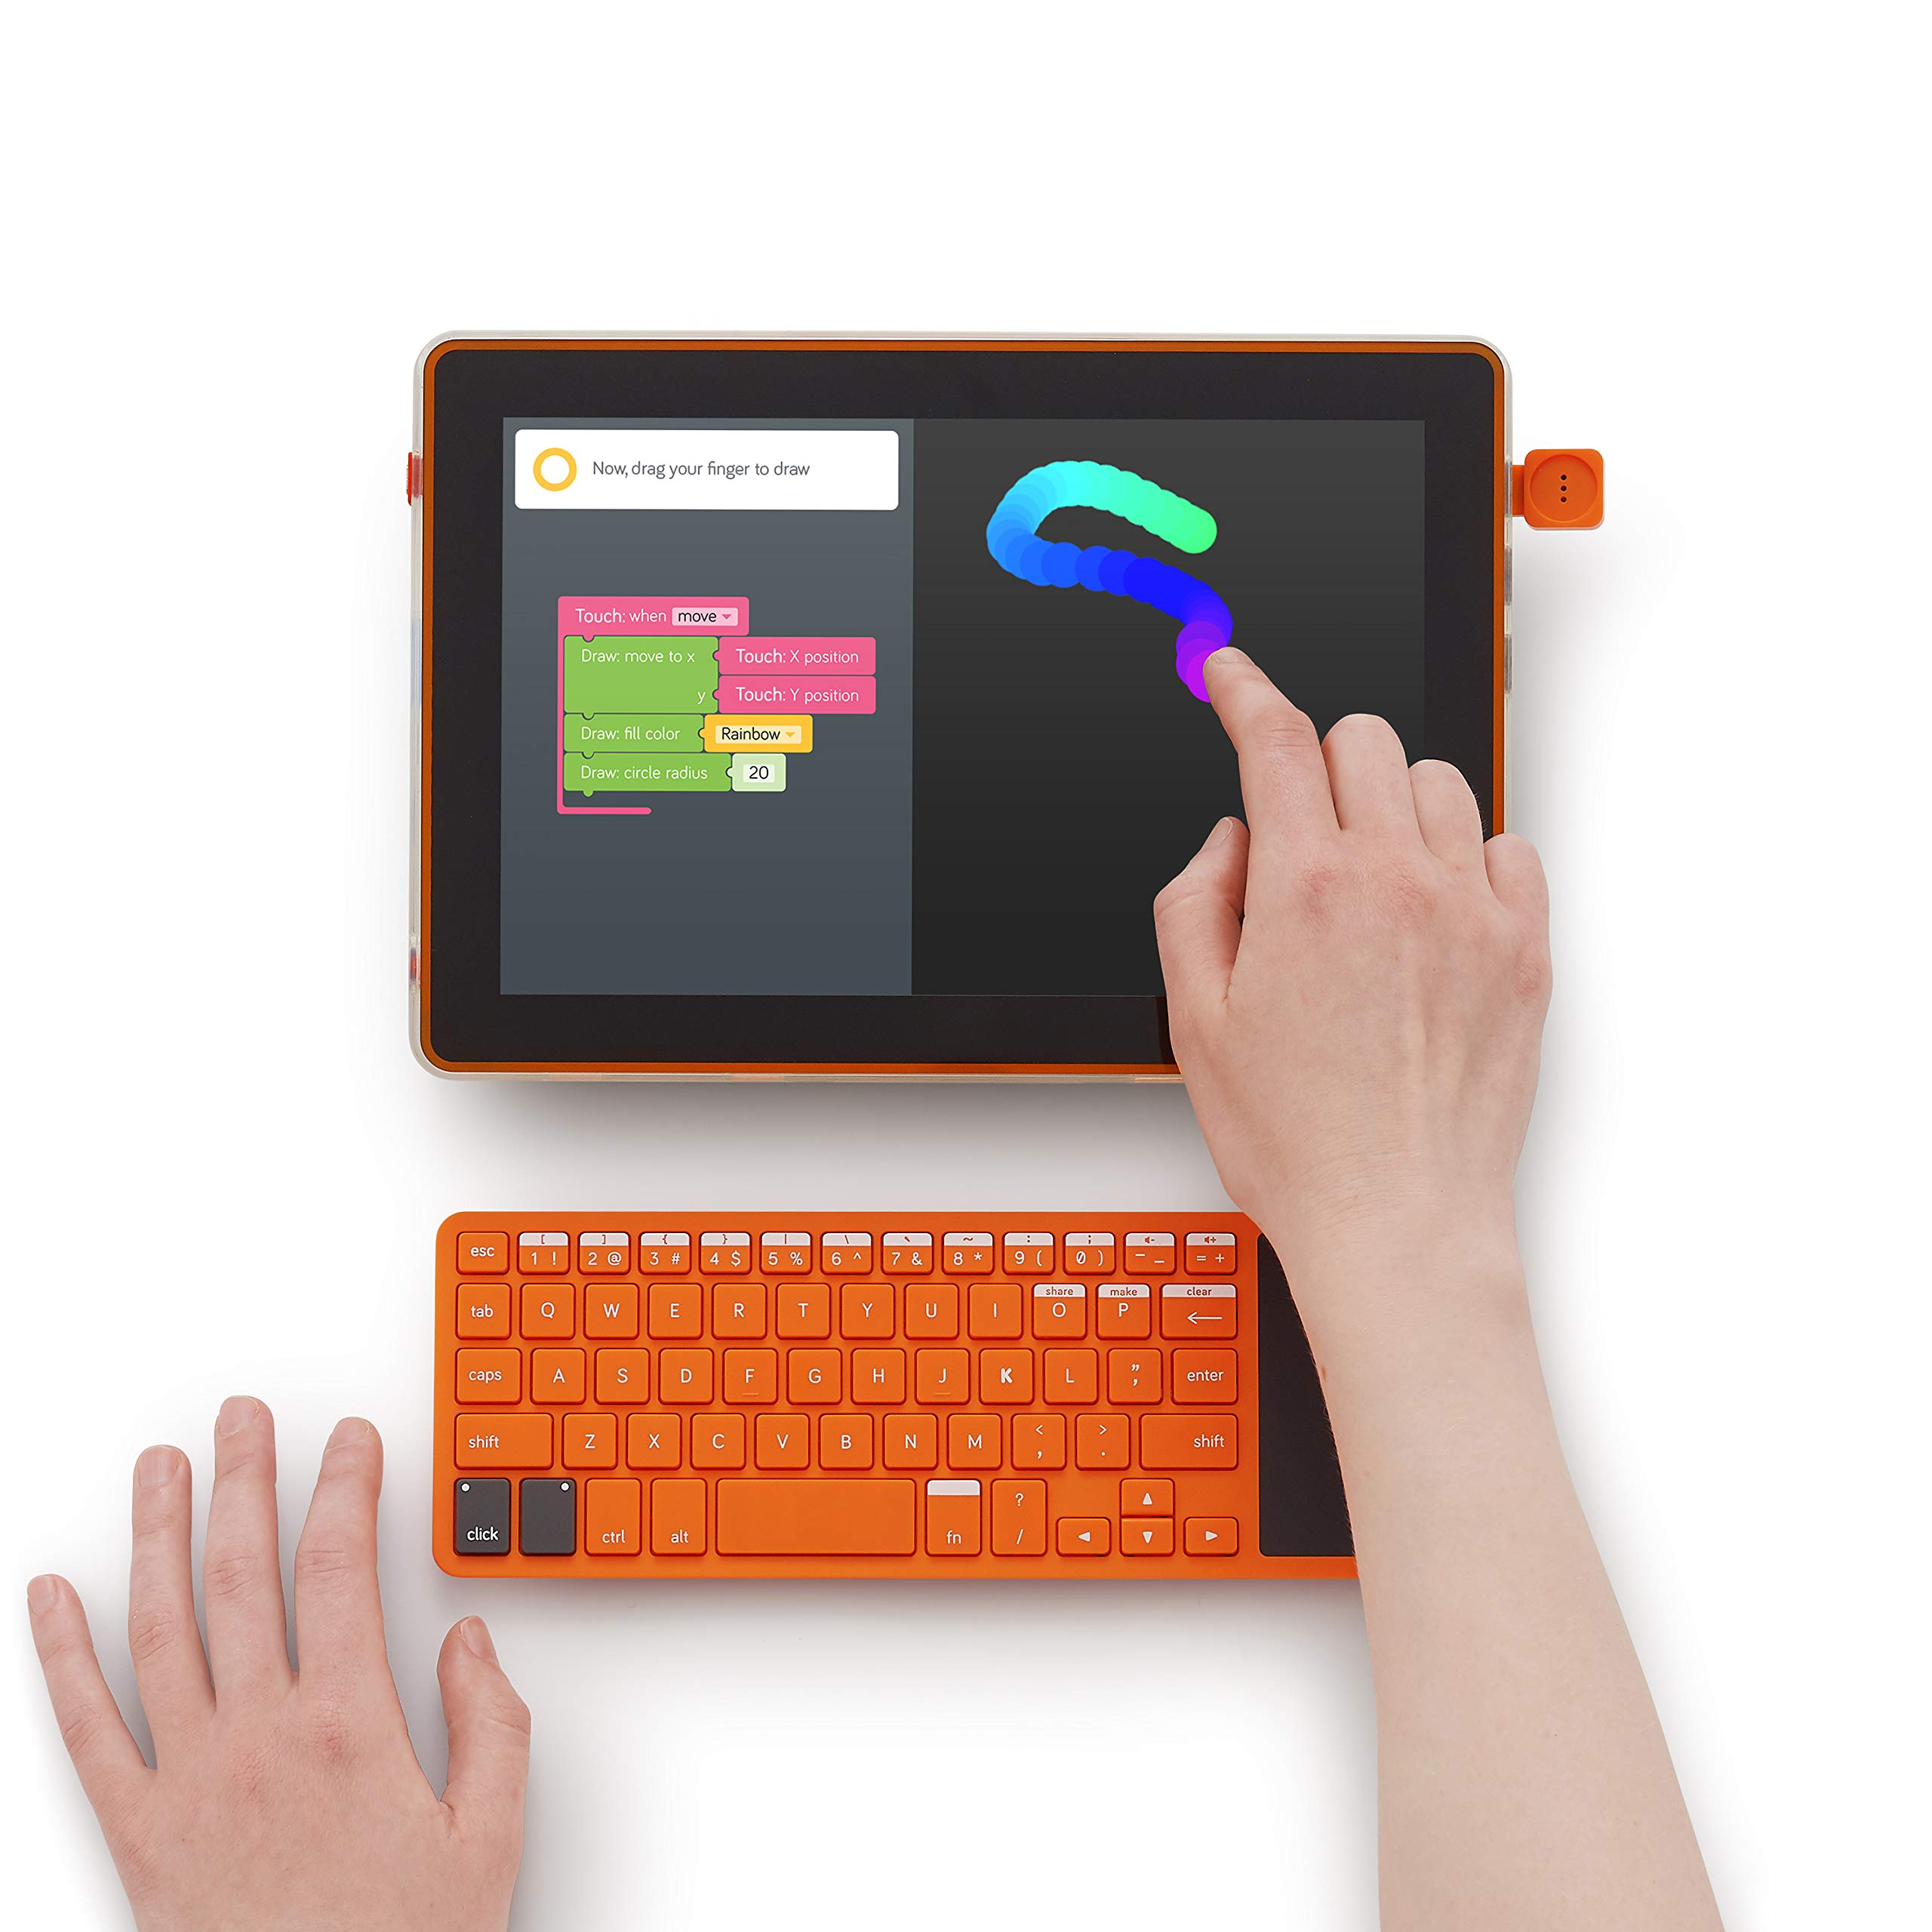 Kano Computer Kit Touch - Build and code a tablet by Kano